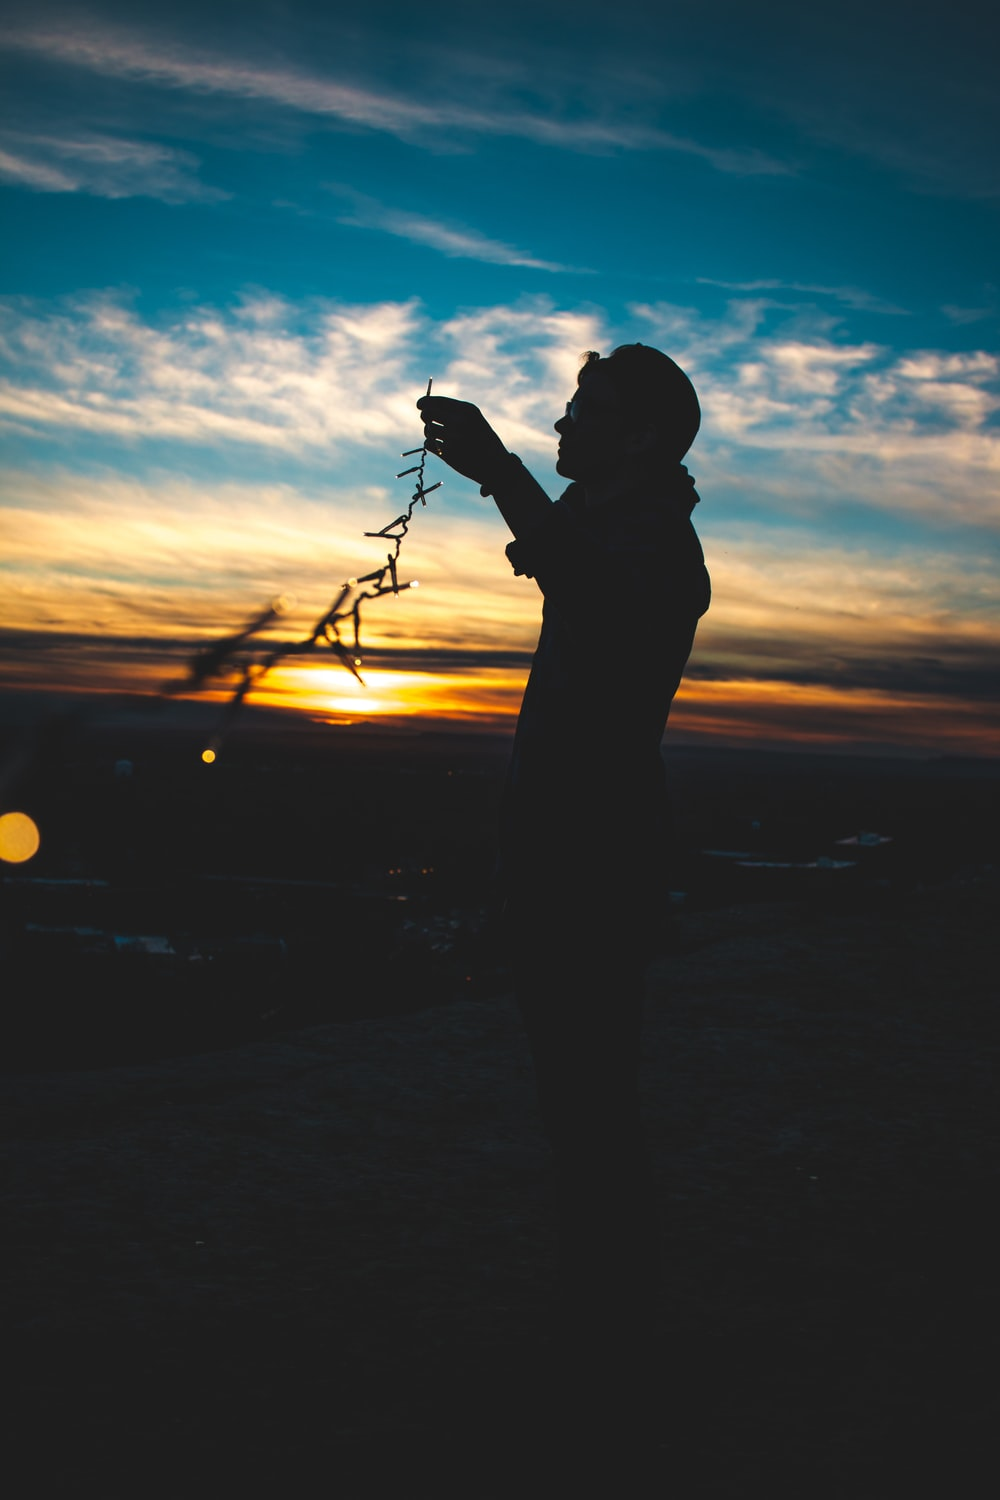 silhouette of person holding string lights during sunset